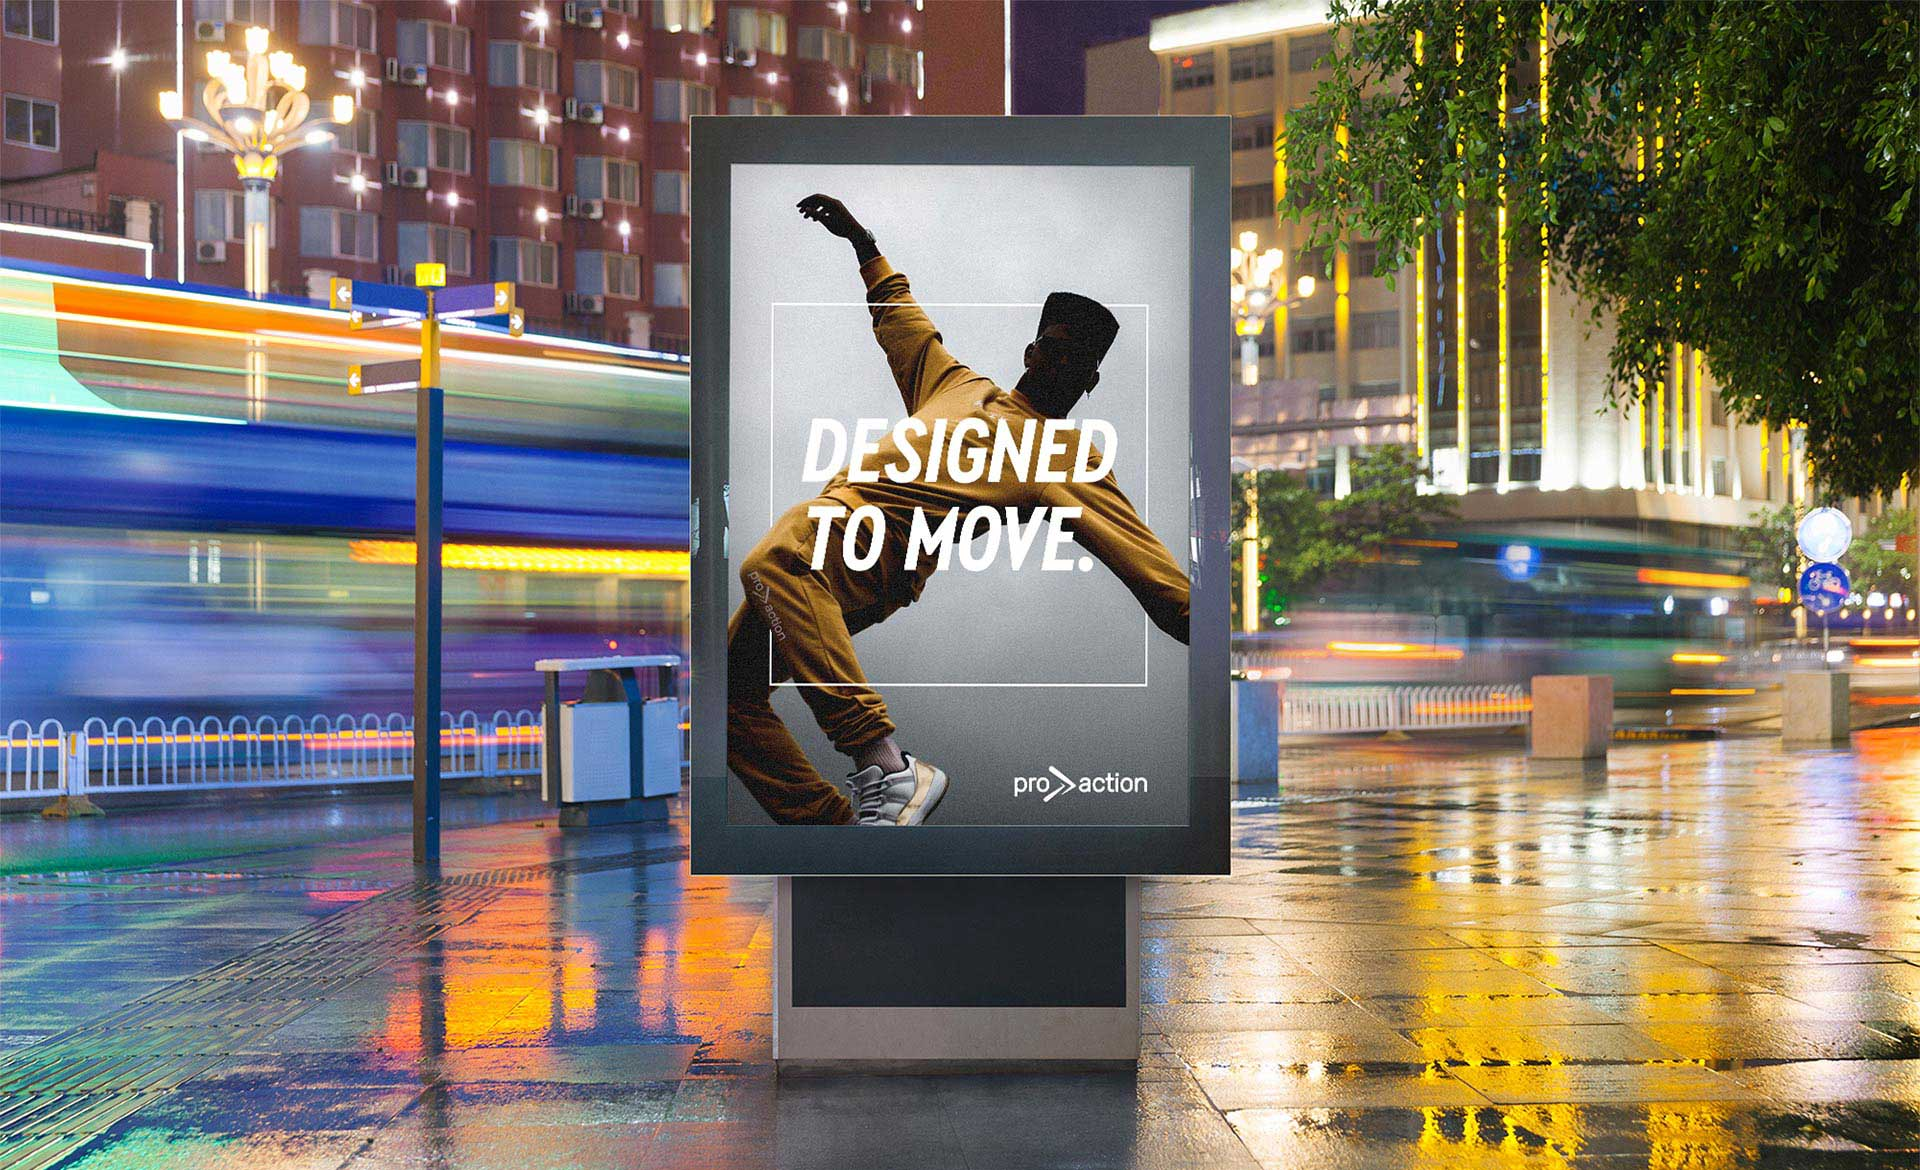 Pro Action designed to move outdoor billboard advertising ad